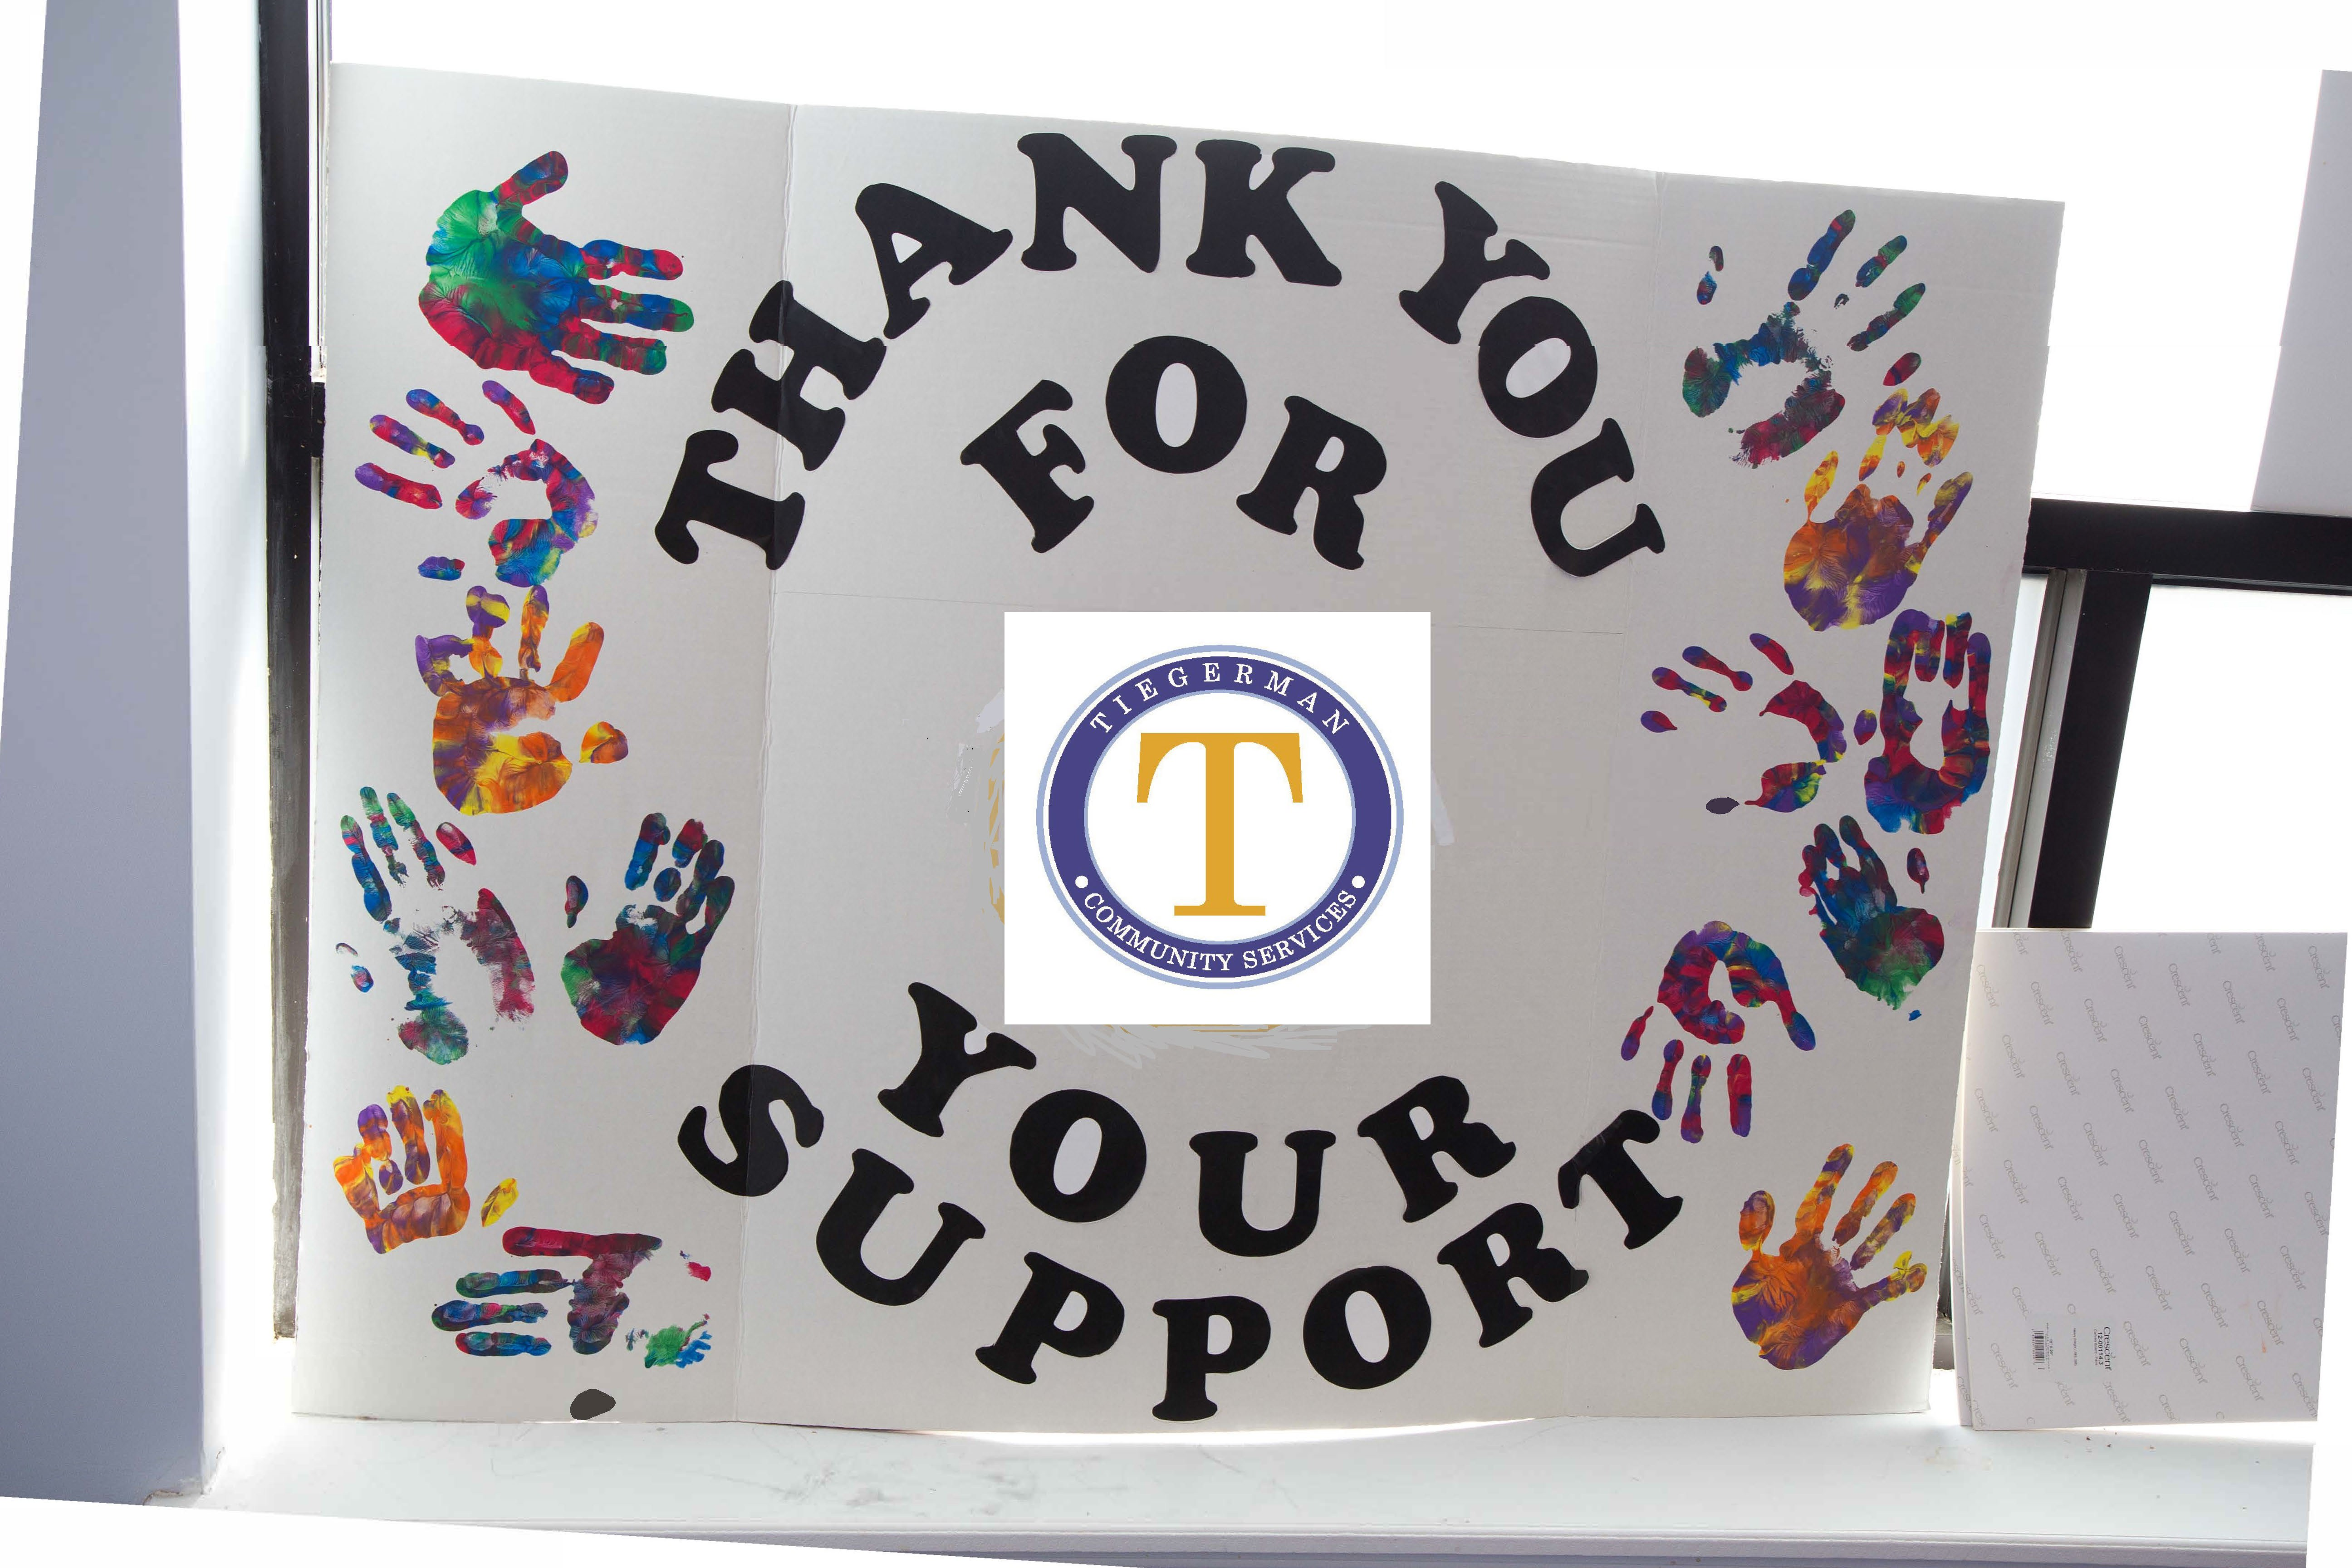 Tiegerman Community Services (TCS) Image